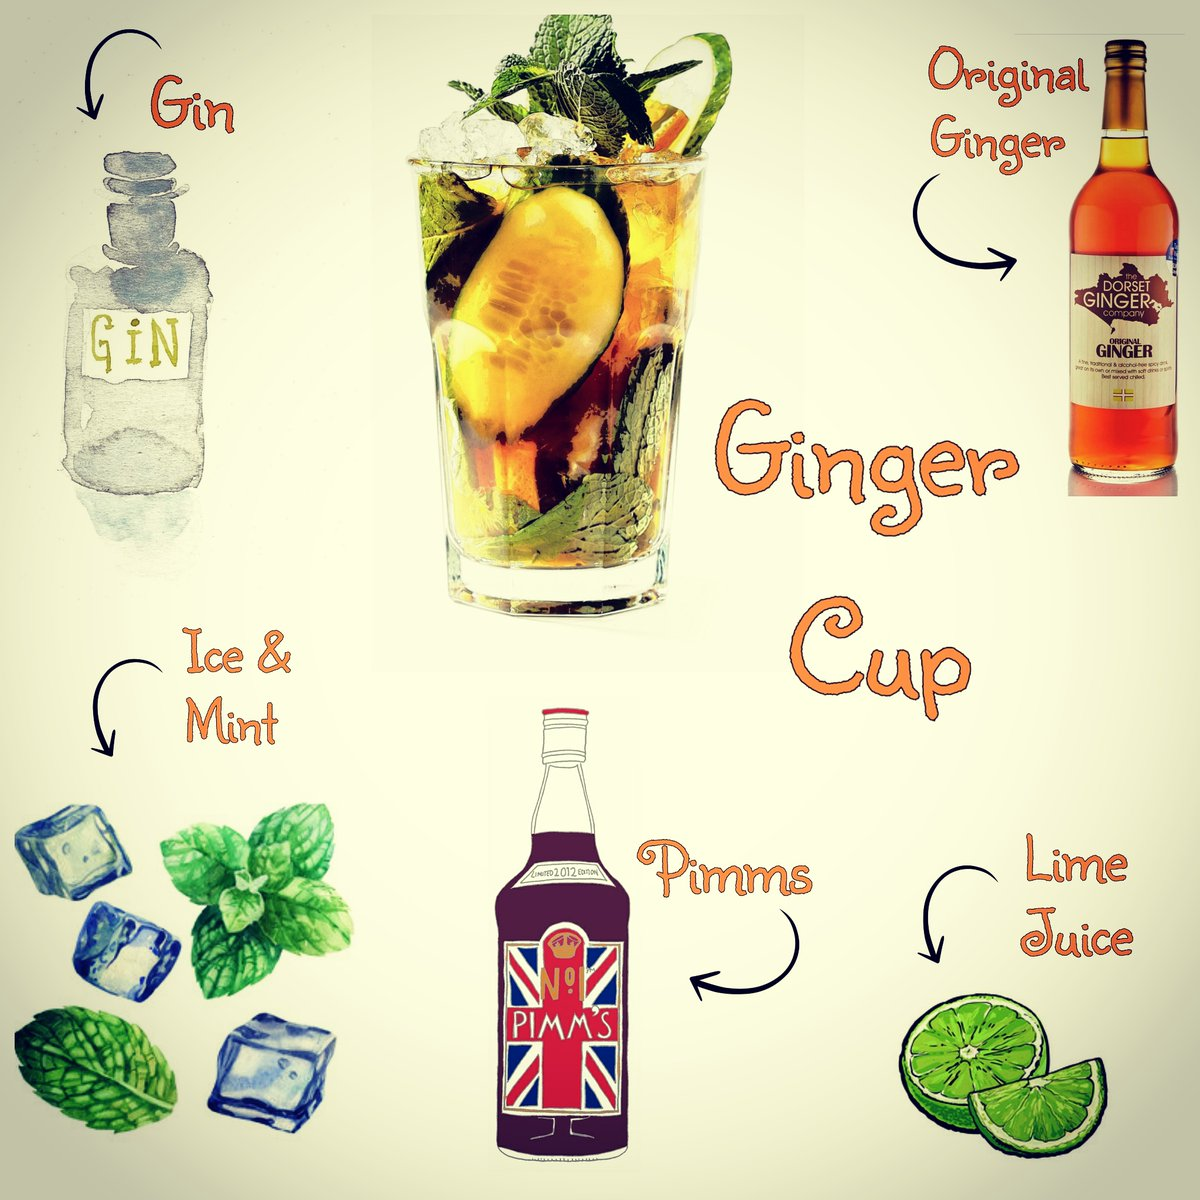 Recipe of The Month is: Ginger Cup!   Check out our Facebook & Insta pages for the recipe.   #supportlocal #buylocal #ginger #awardwinning #cocktails #mixer #spreadingthegingerlove #lovewhatwedo #recipeofthemonth #cheerspic.twitter.com/x8vhZQ8spK